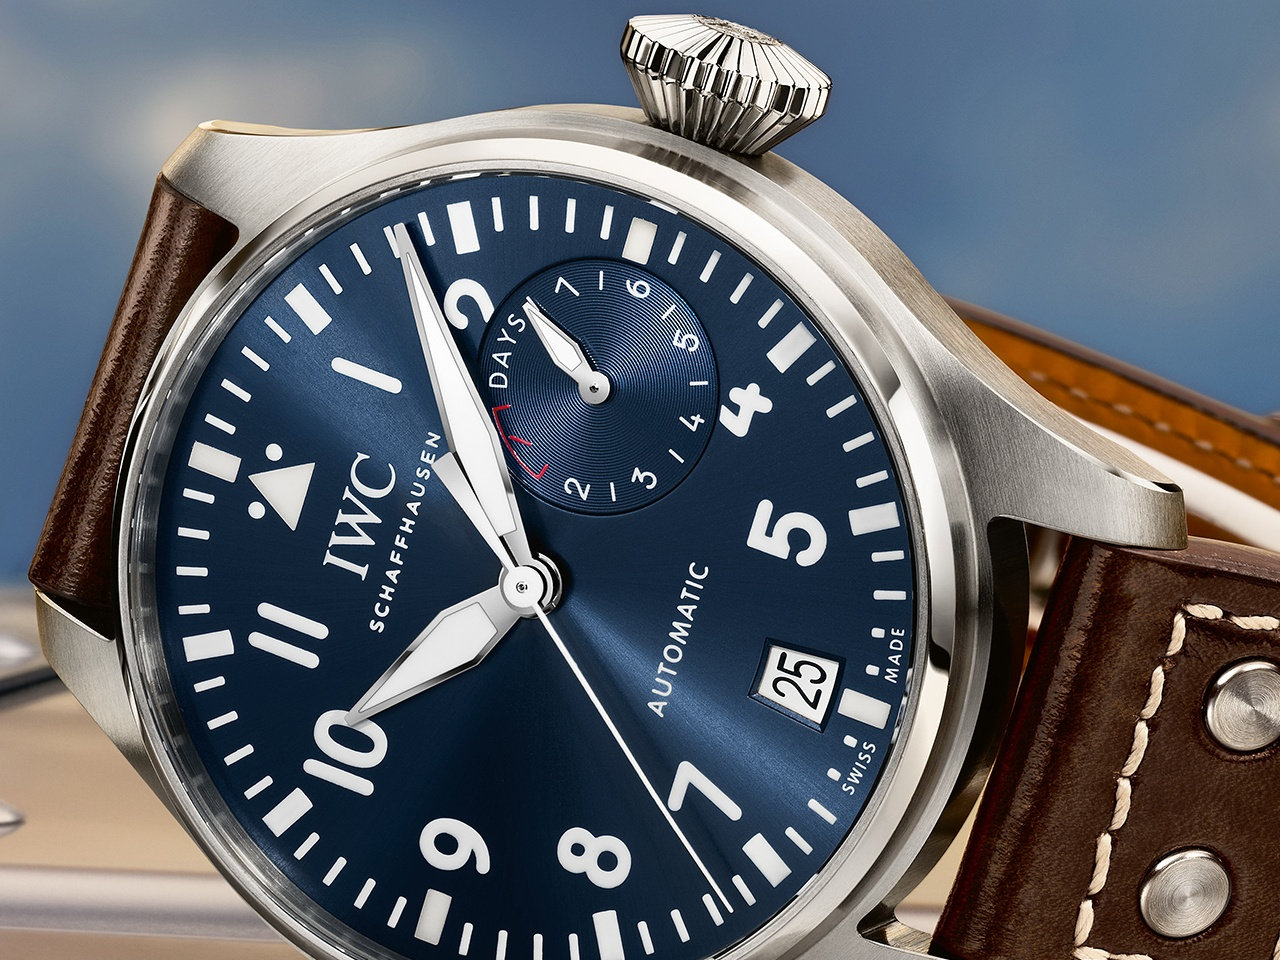 IWC-Pilot-Watch-Edition-Le-Petit-Prince-Ref-IW500916-0-100_4